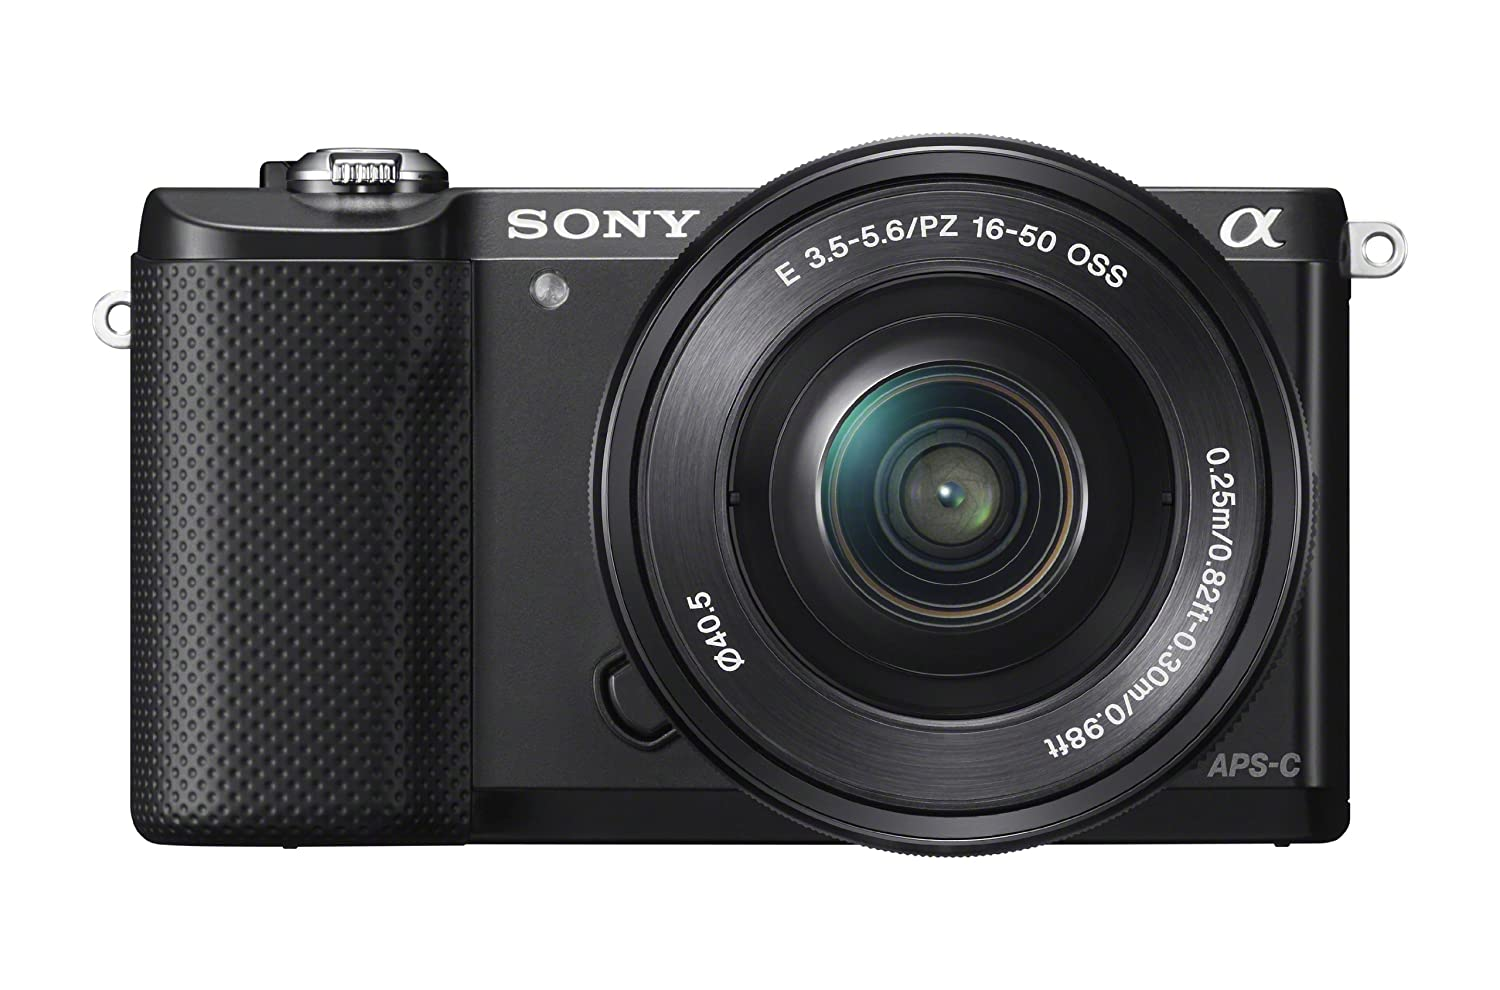 Top 10 Best Mirrorless Camera (2020 Reviews & Buying Guide) 4